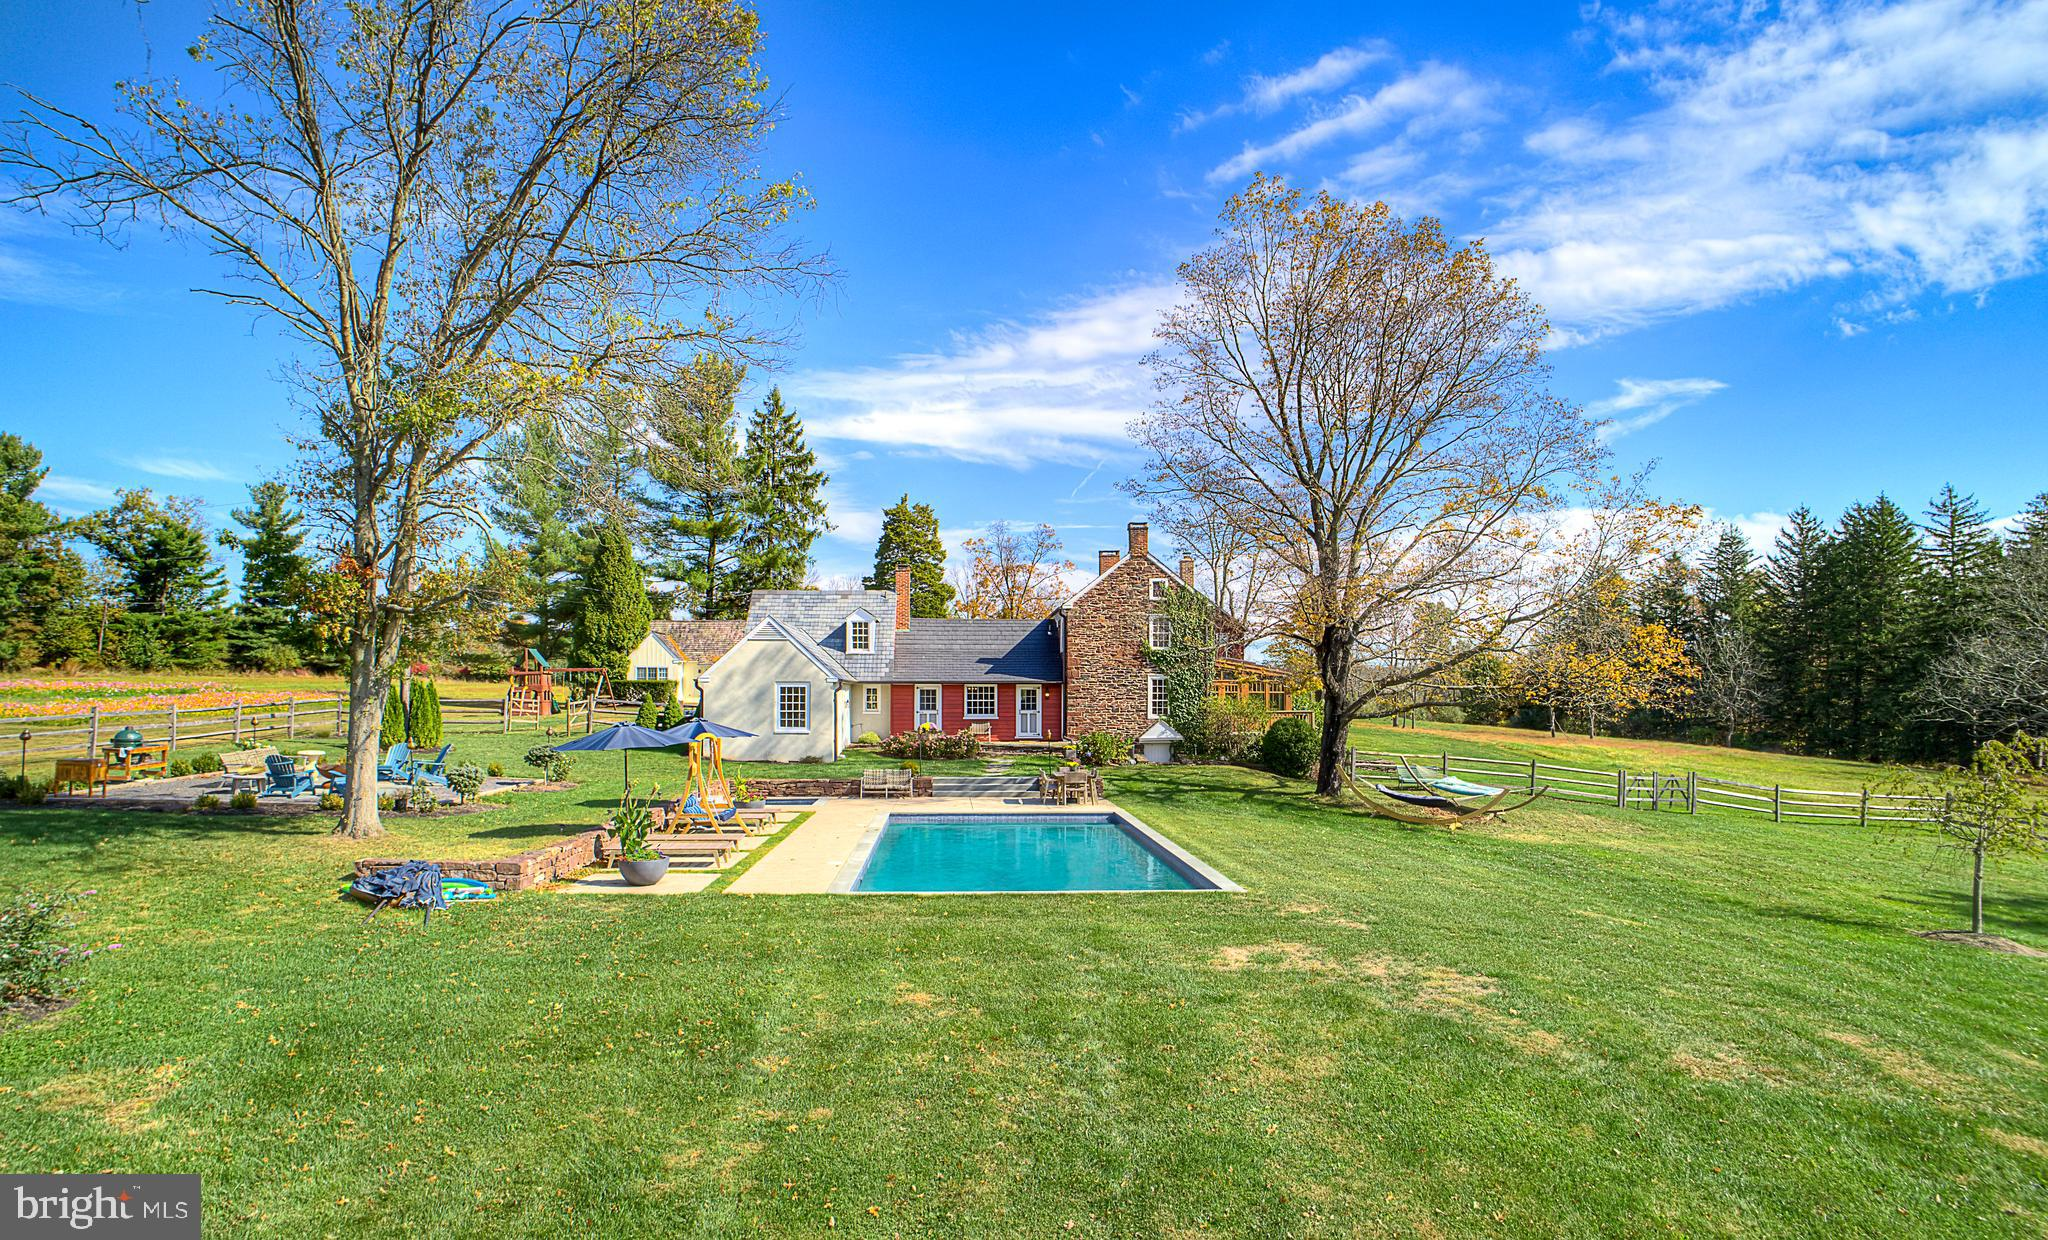 6338 CARVERSVILLE ROAD, PIPERSVILLE, PA 18947